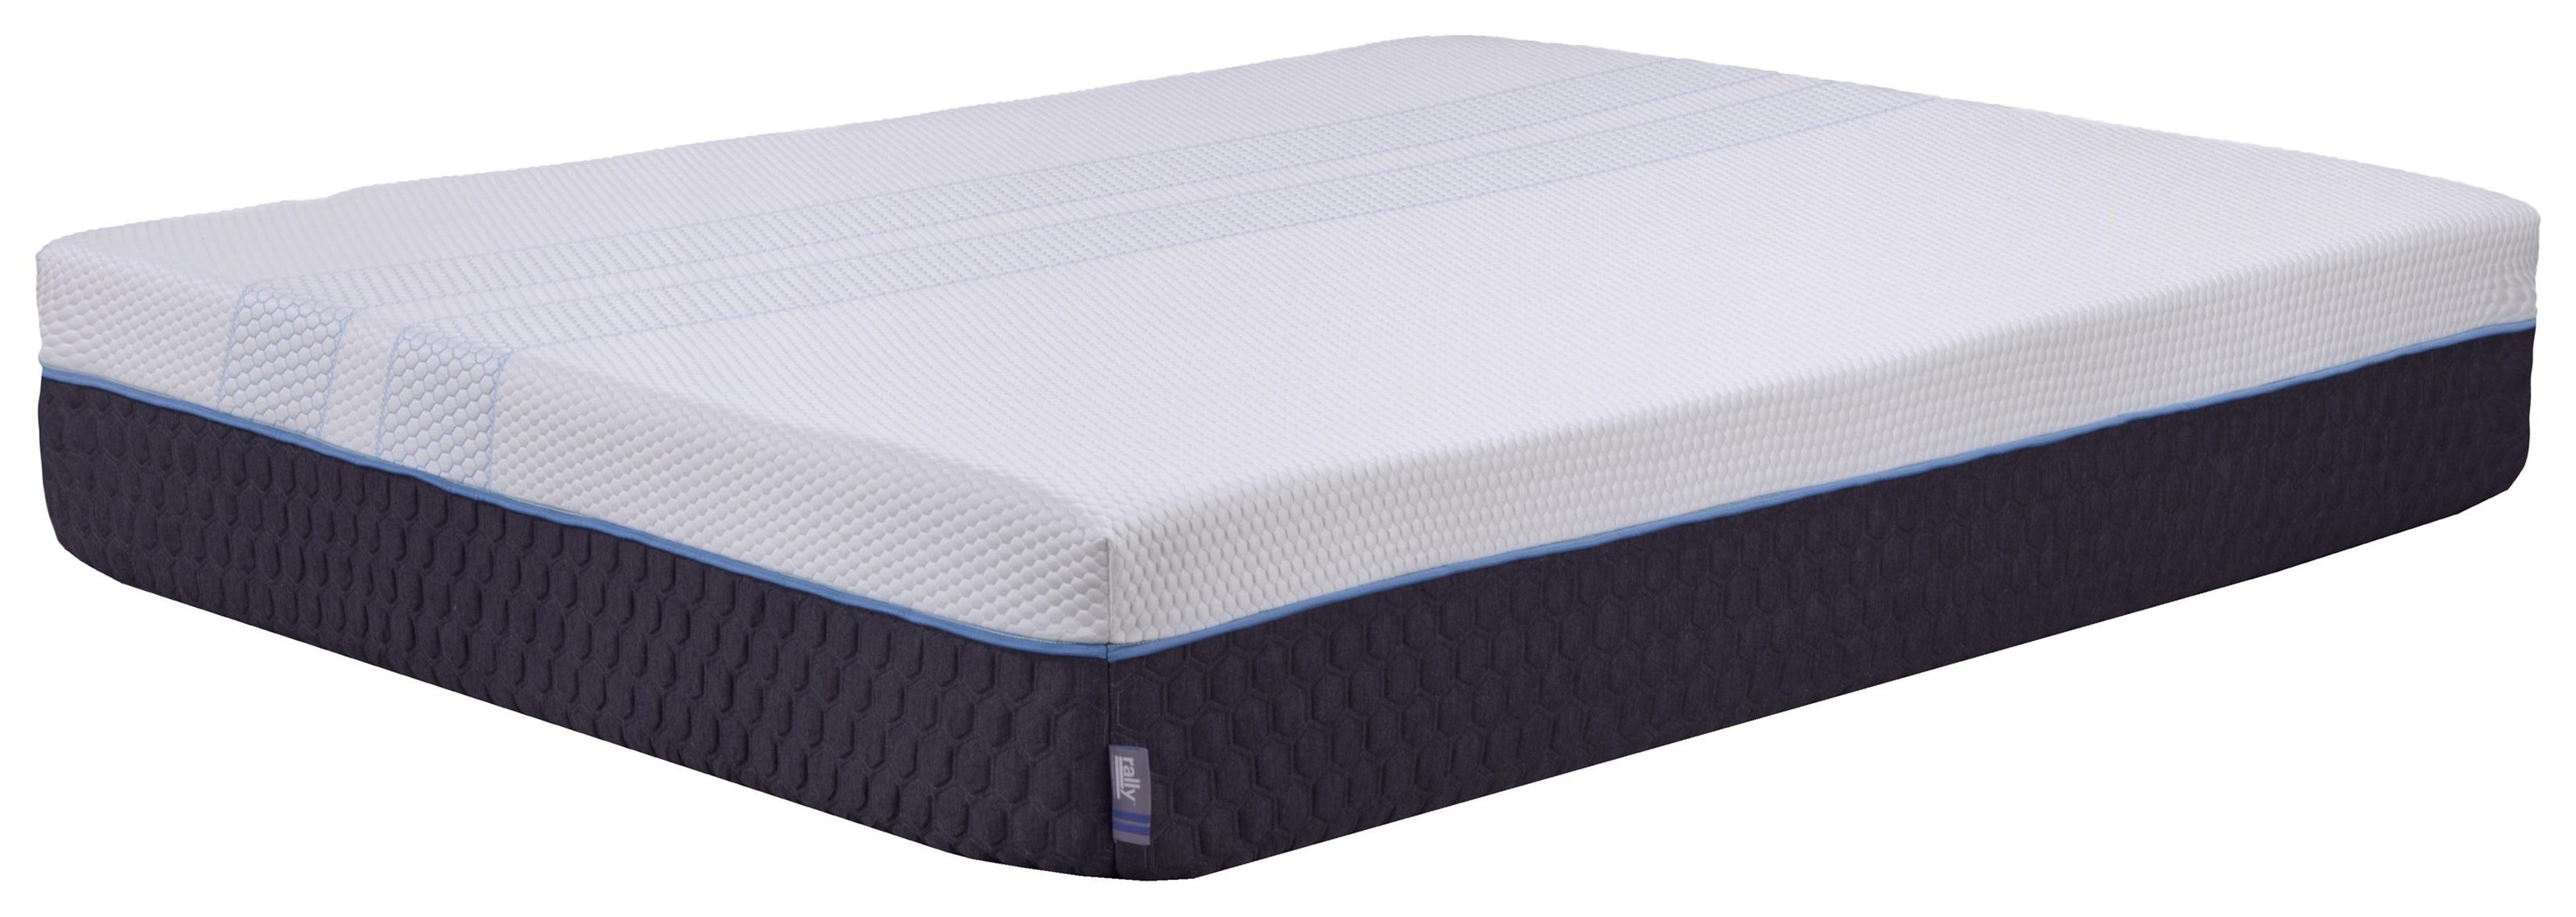 Rally Hybrid Cooling Plush Queen Hybrid Cooling Plush Mattress by Diamond Mattress at Beck's Furniture